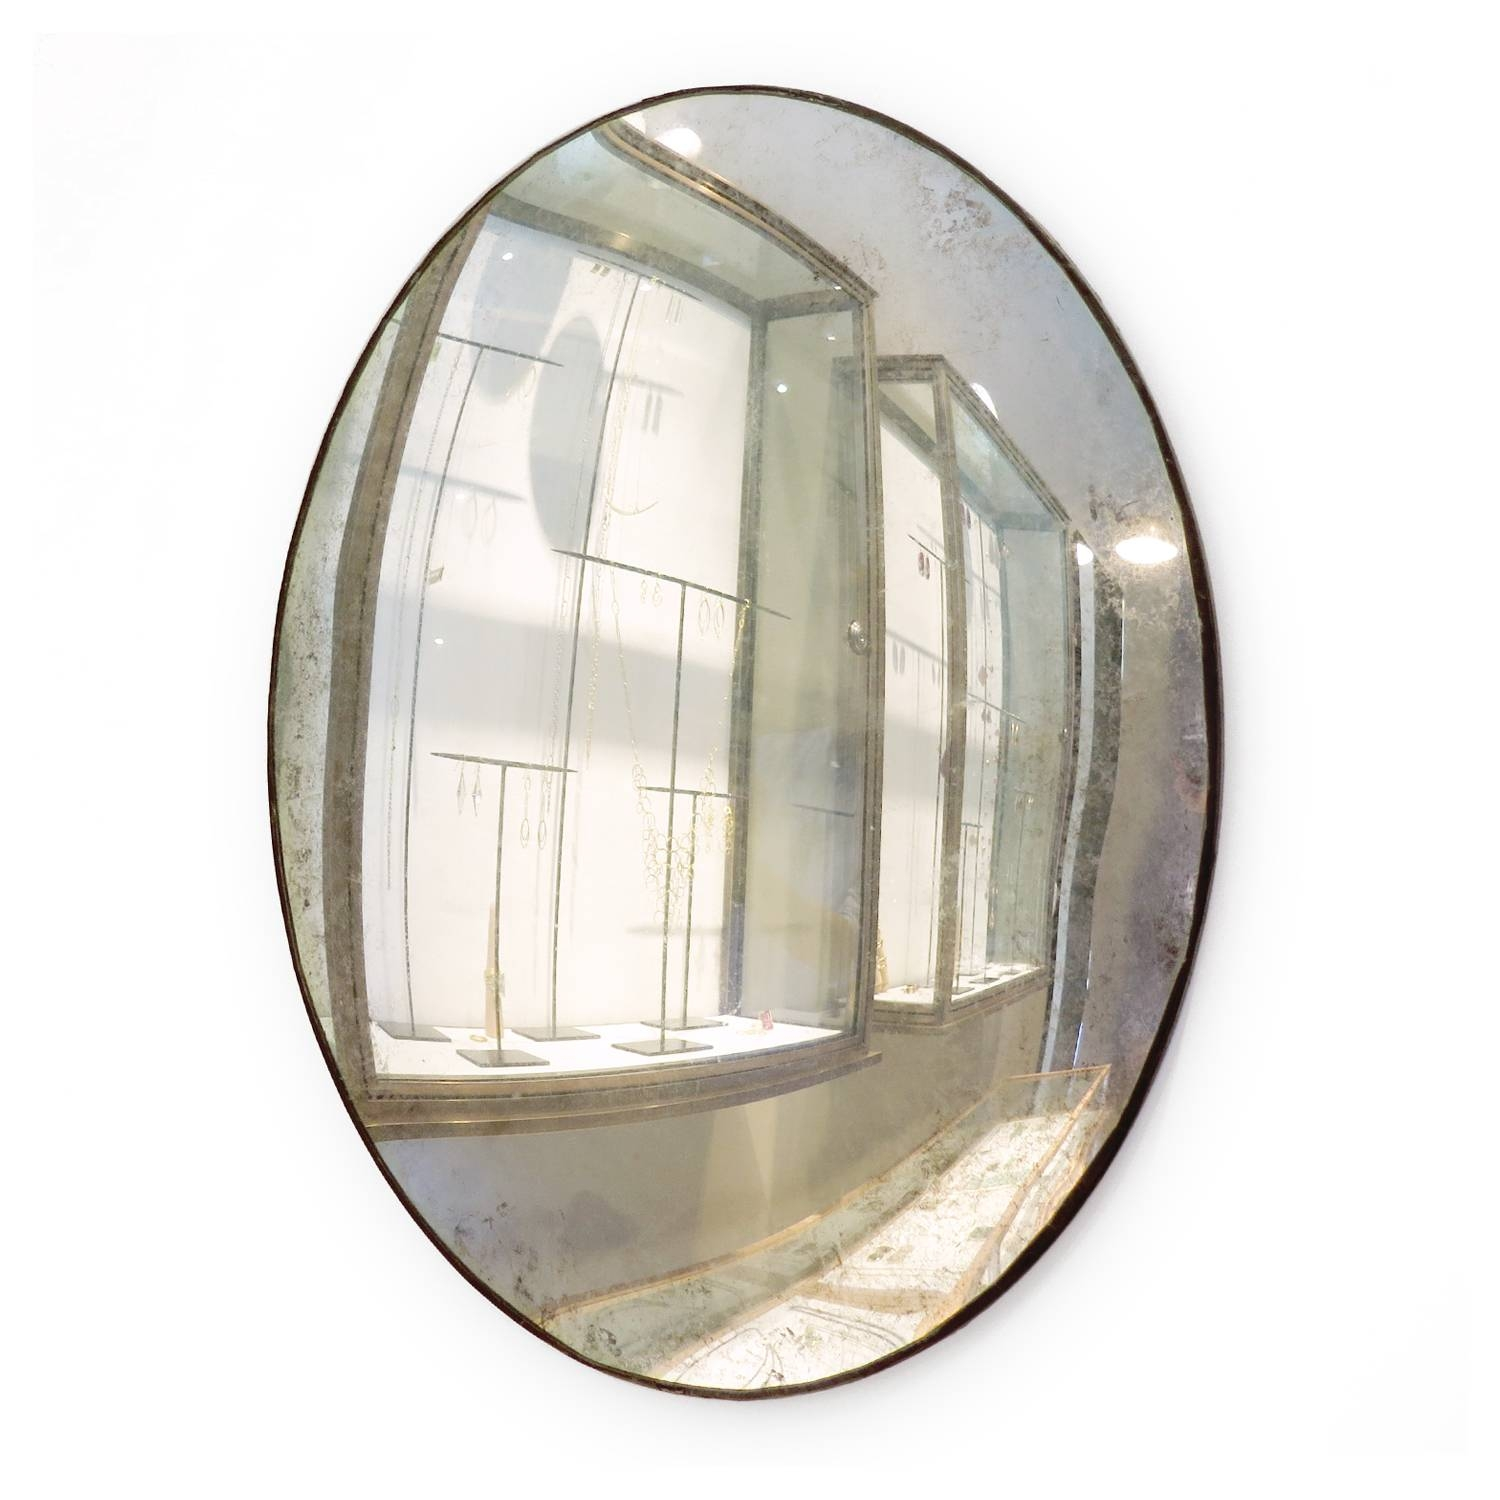 Maureen Fullam 16 X 20 Inches Large Convex Oval Silver Leafed regarding Large Convex Mirrors (Image 16 of 25)